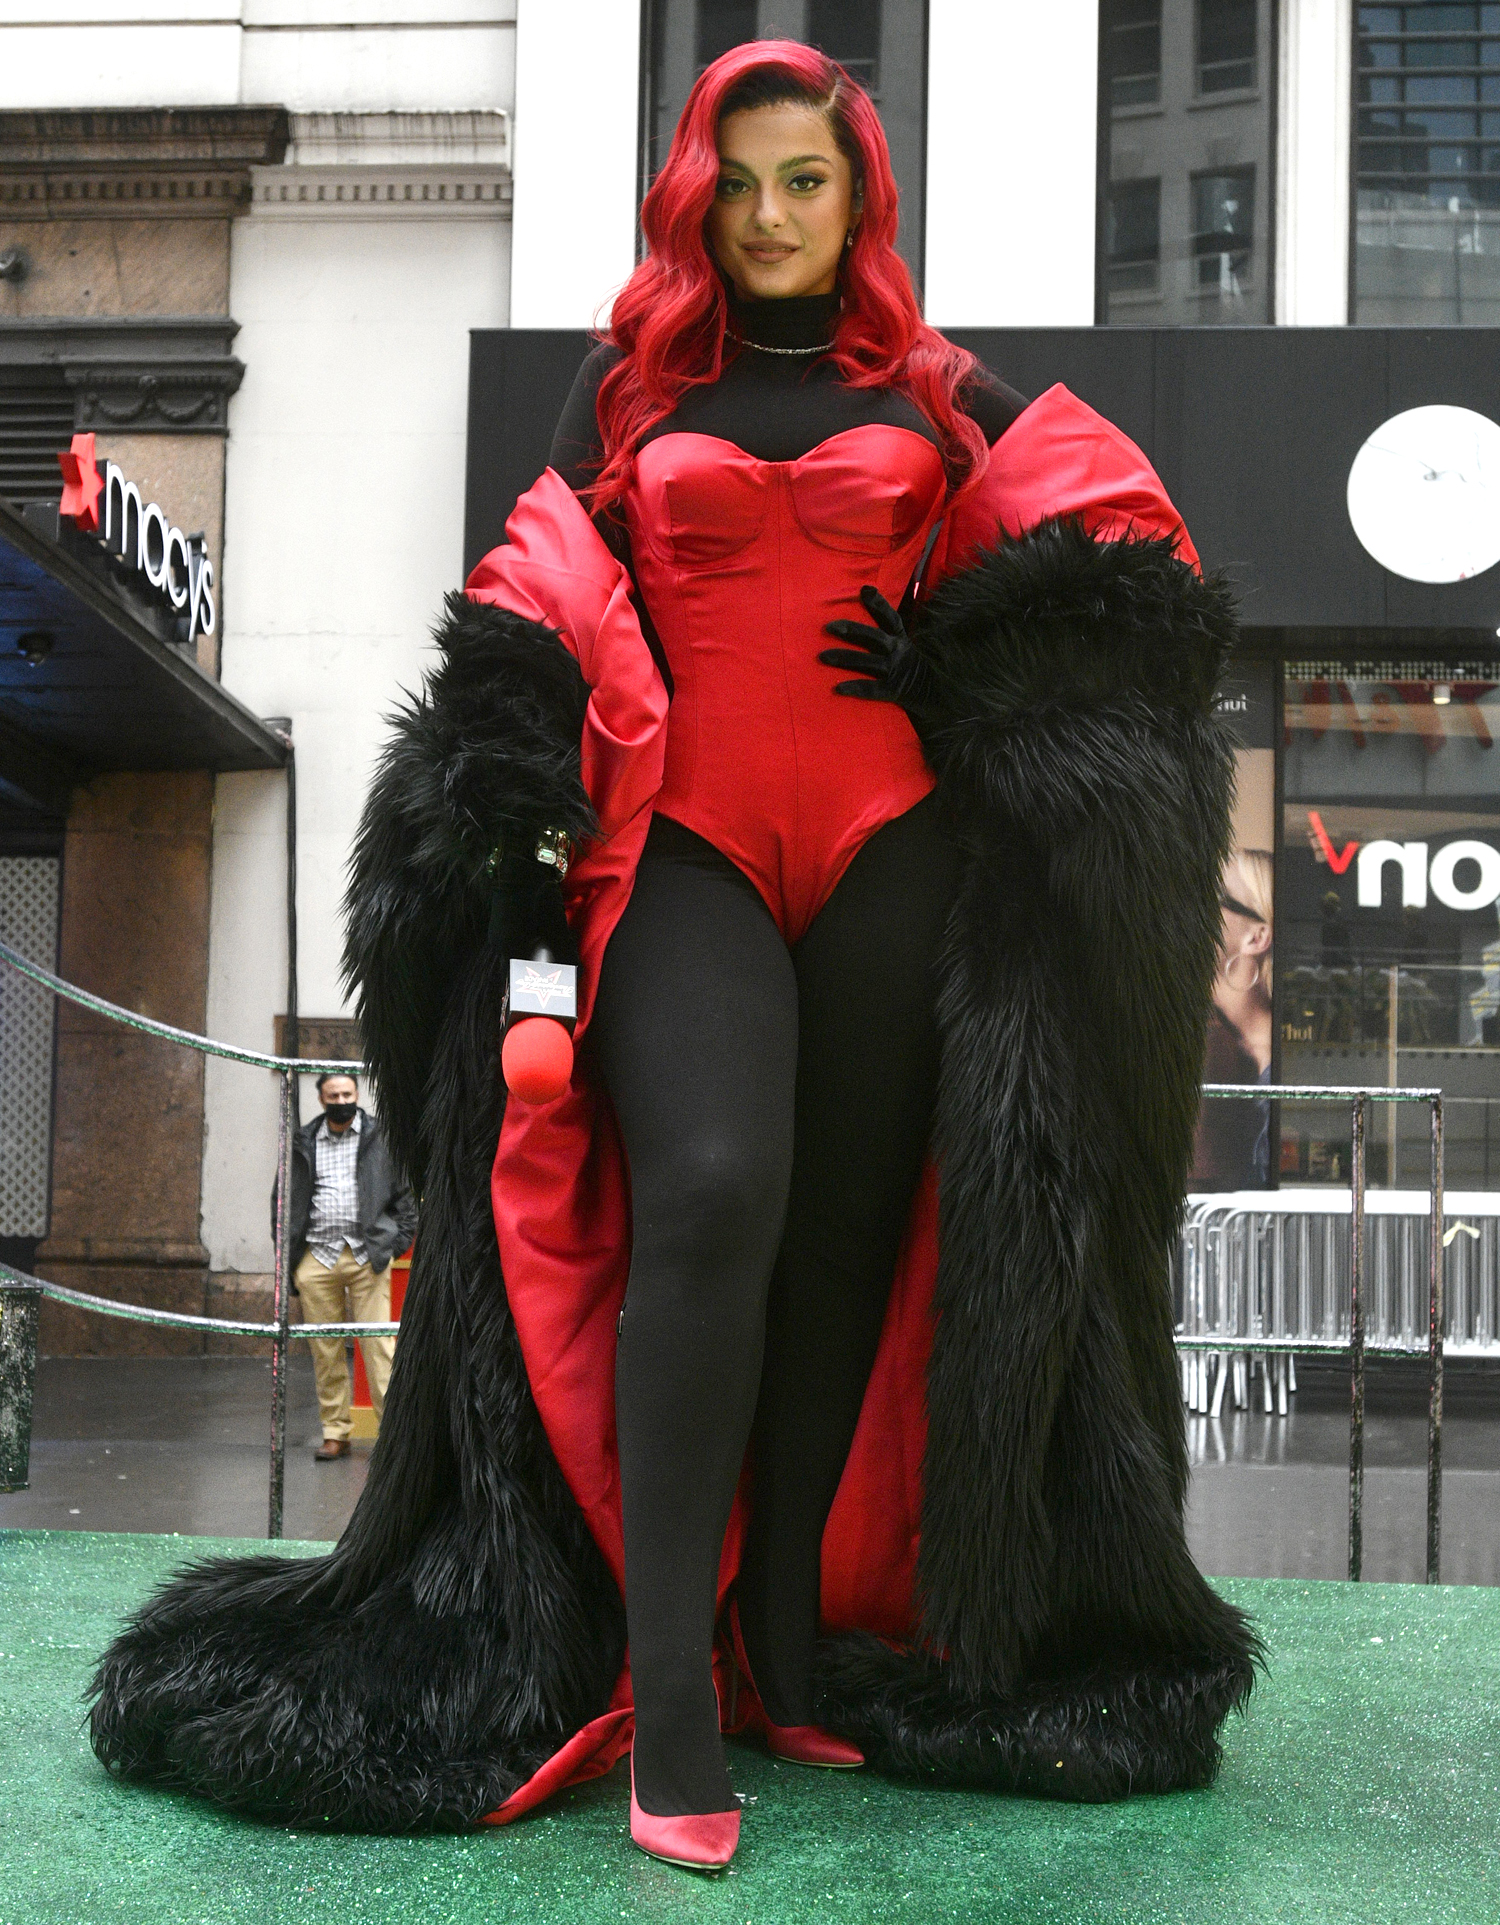 Bebe Rexha atop the Jennie-O float at the 94th Annual Macy's Thanksgiving Day Parade